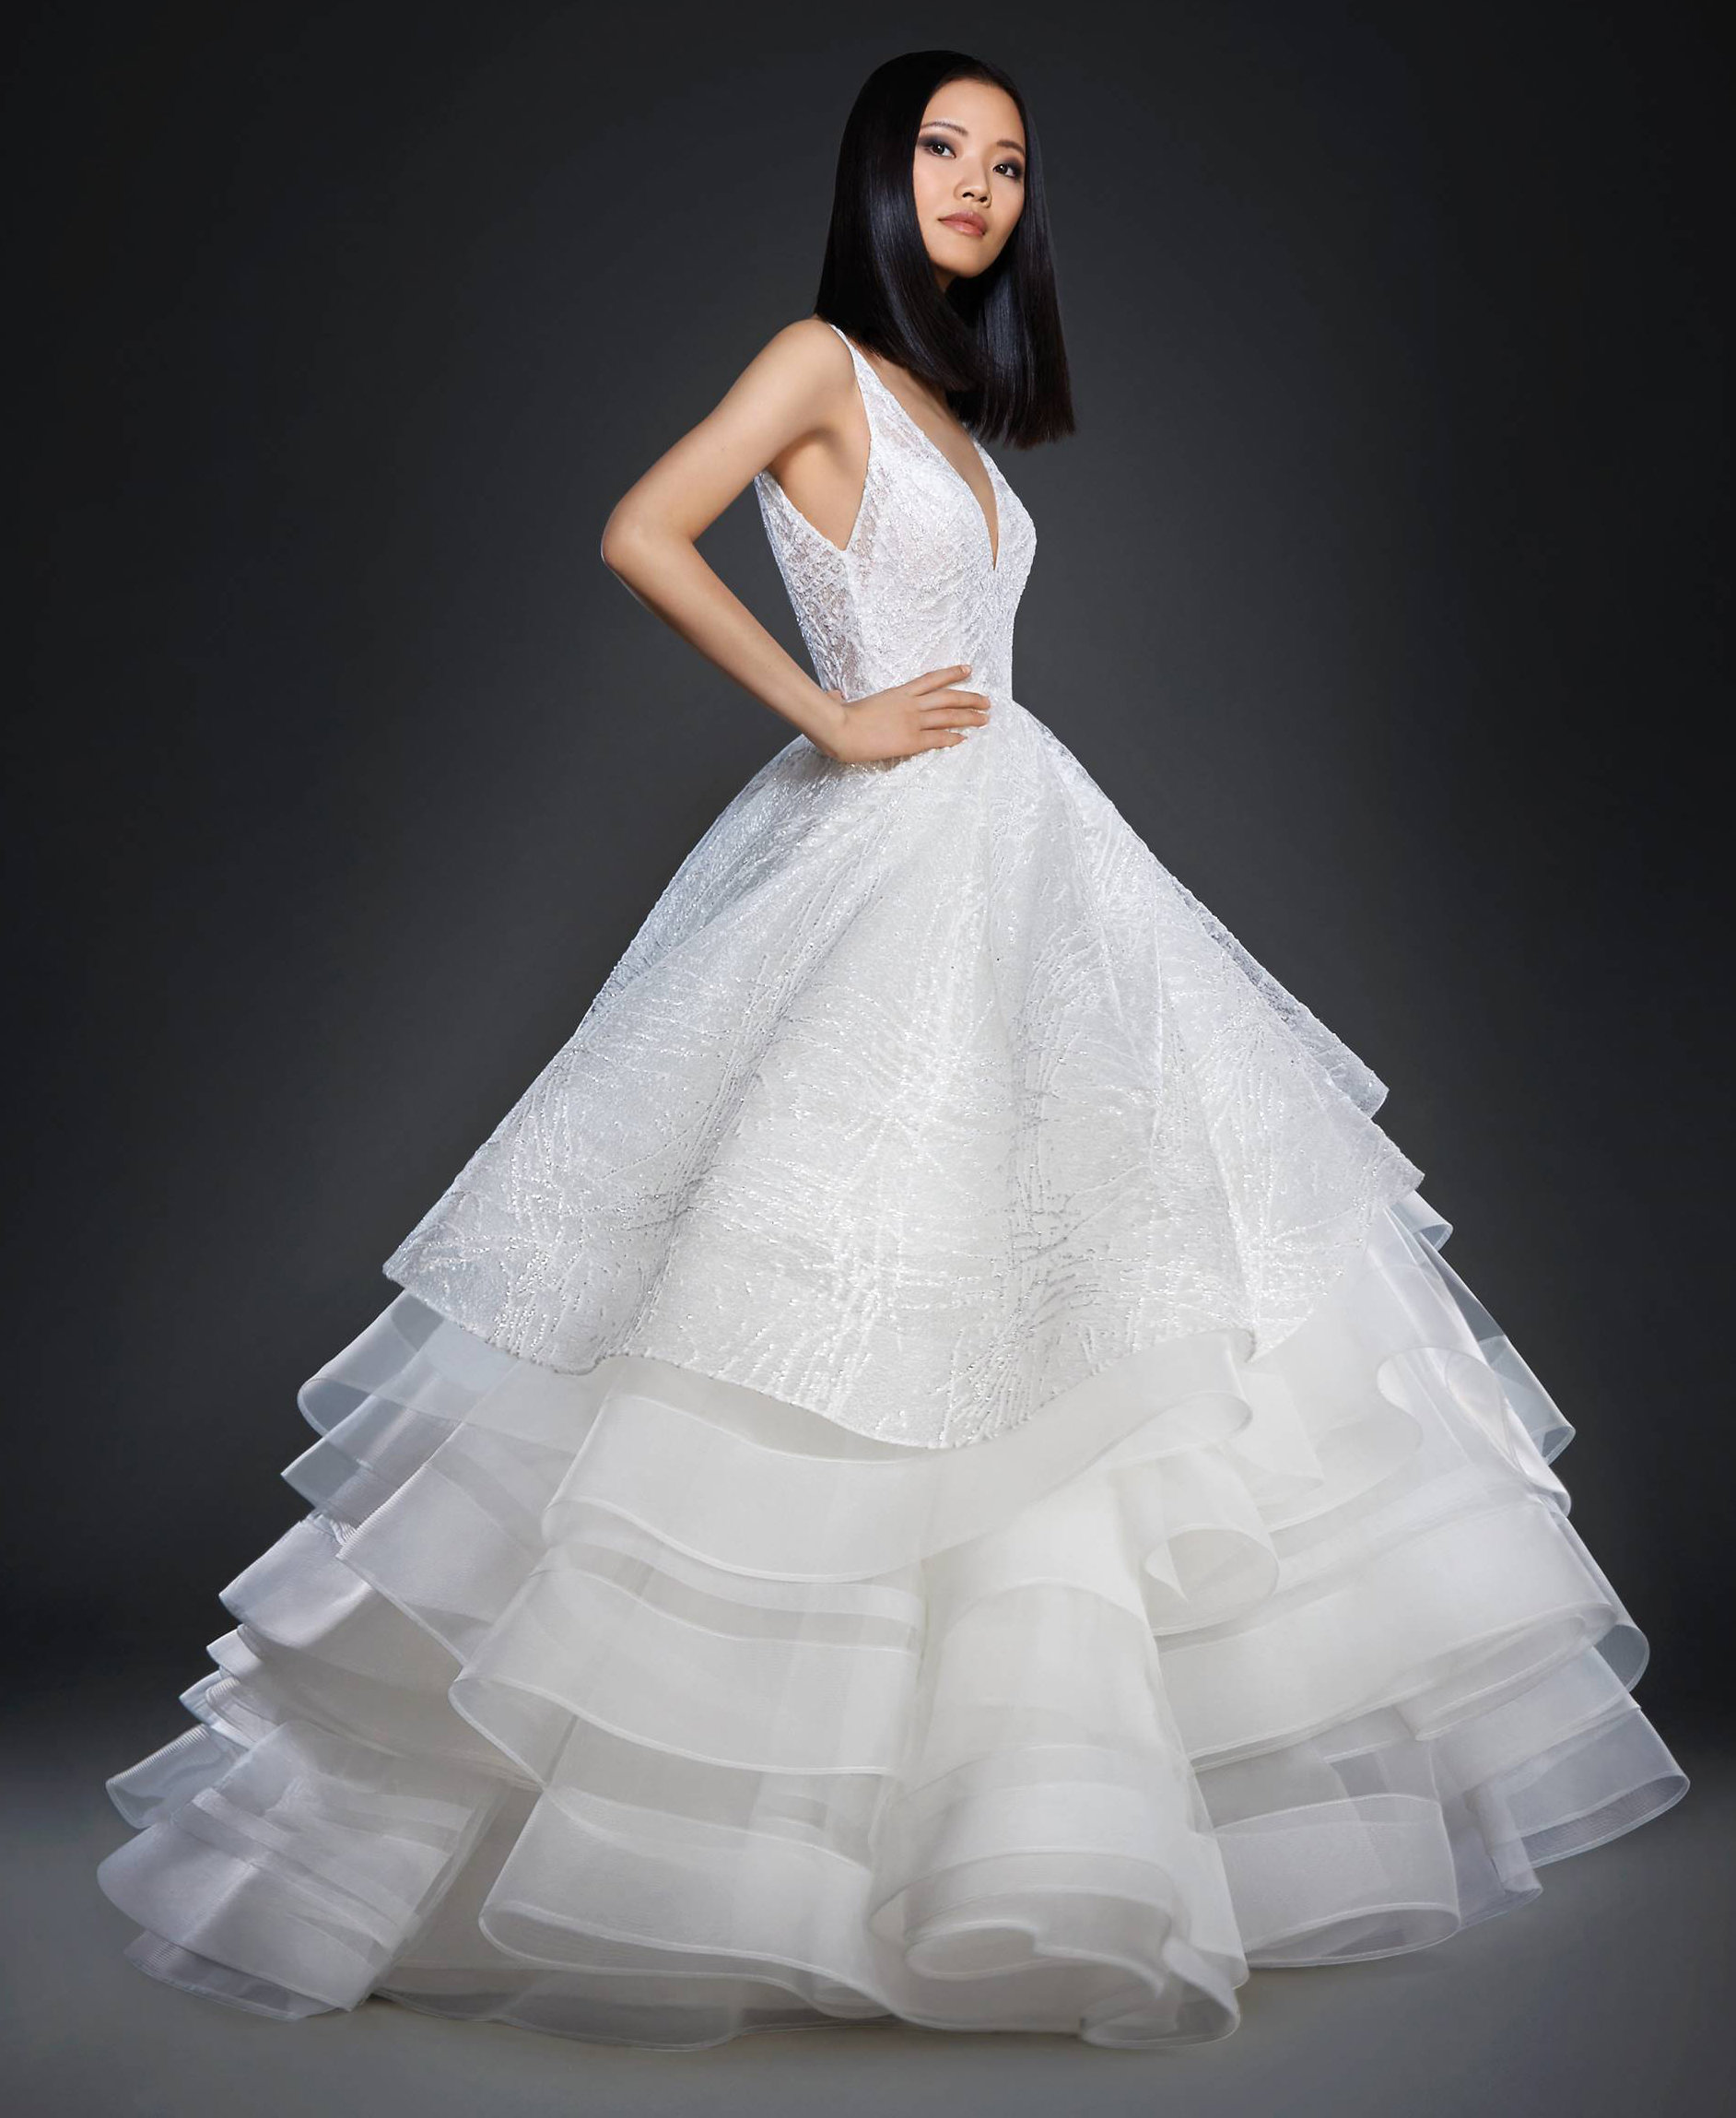 Romantic Ball Gown Wedding Dress